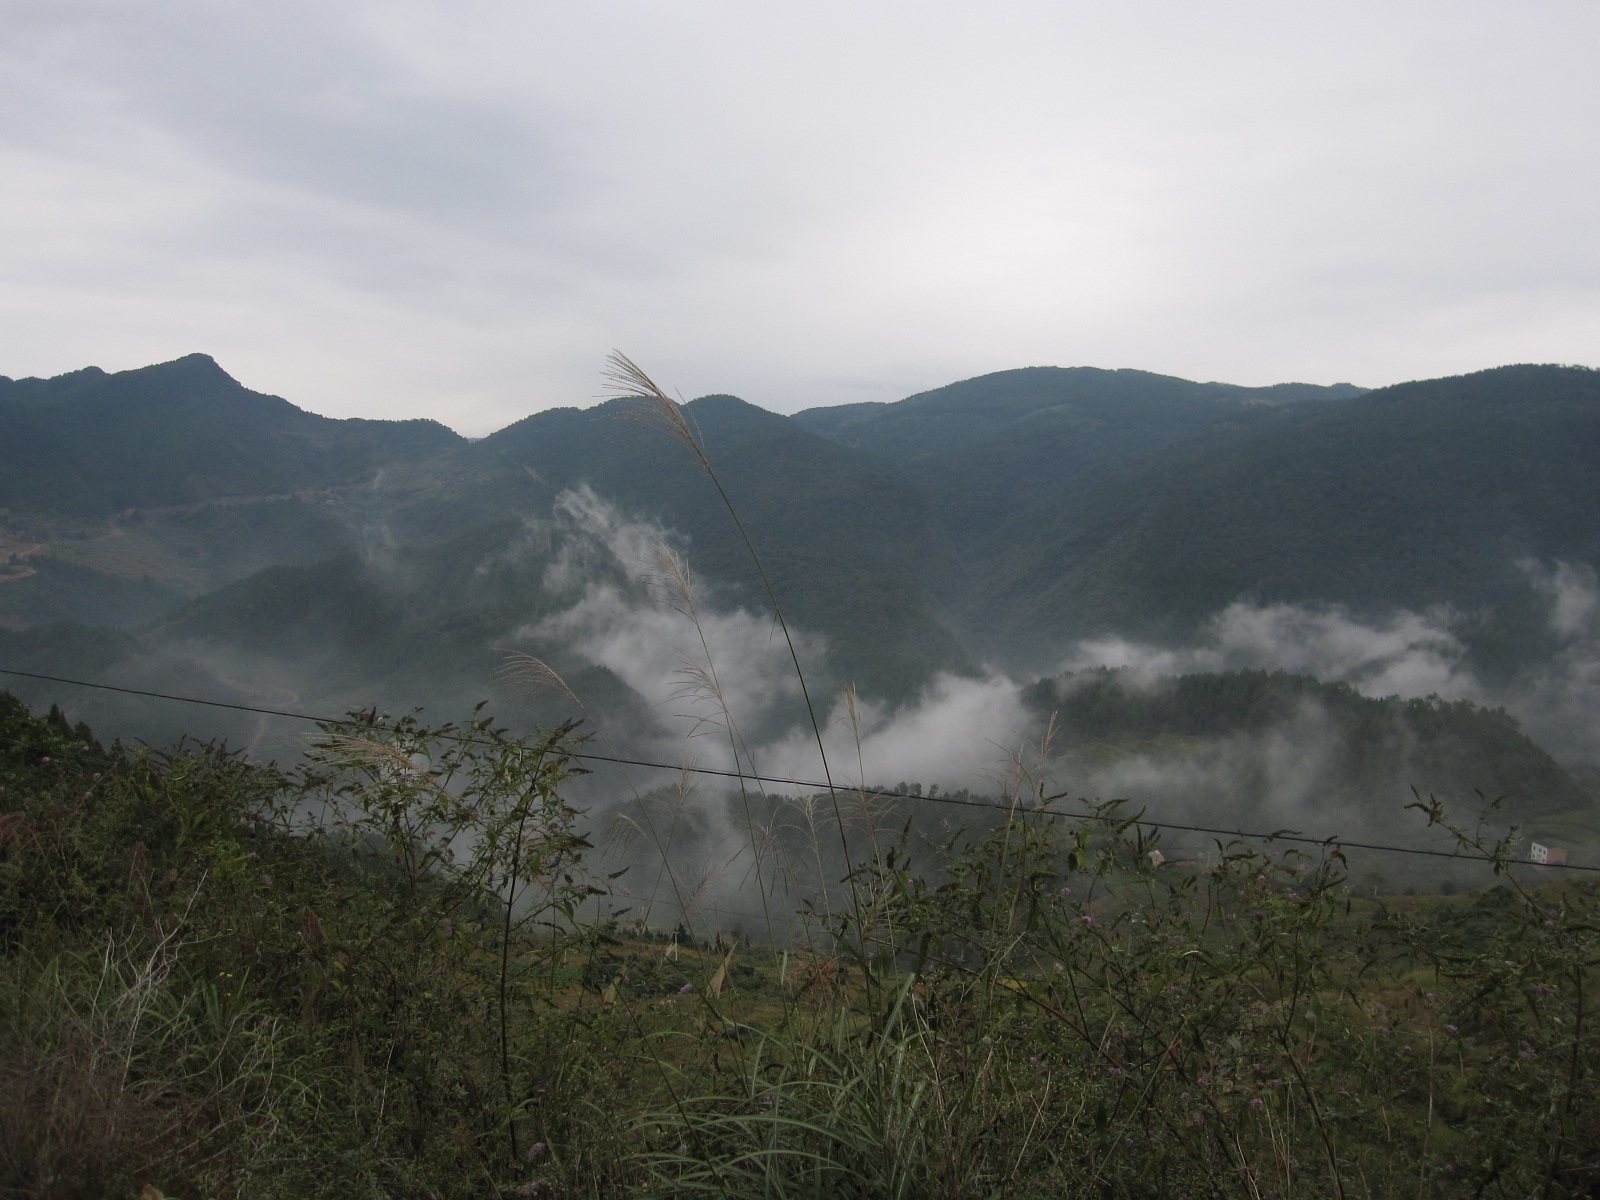 Climbing back up into the mountains towards border with Hubei.